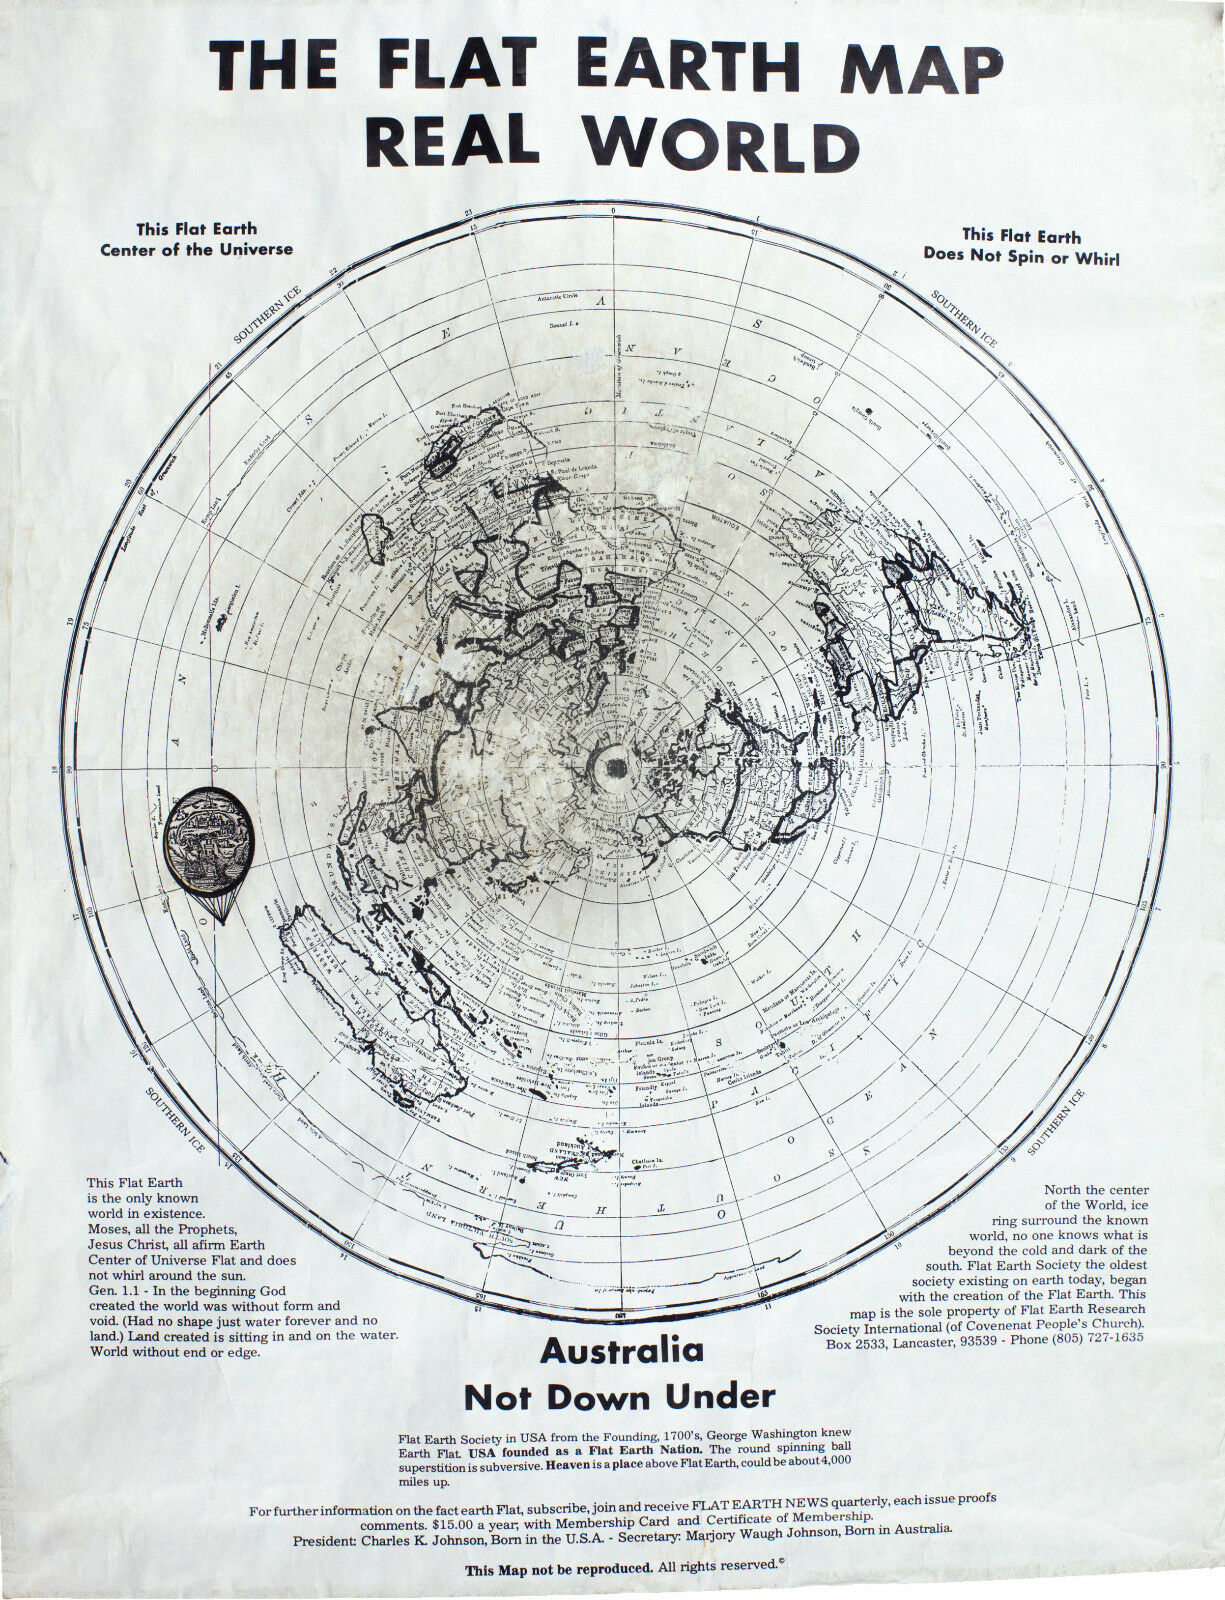 Map Of Australia 1700.The Flat Earth Society Map Real World Australia Not Down Under